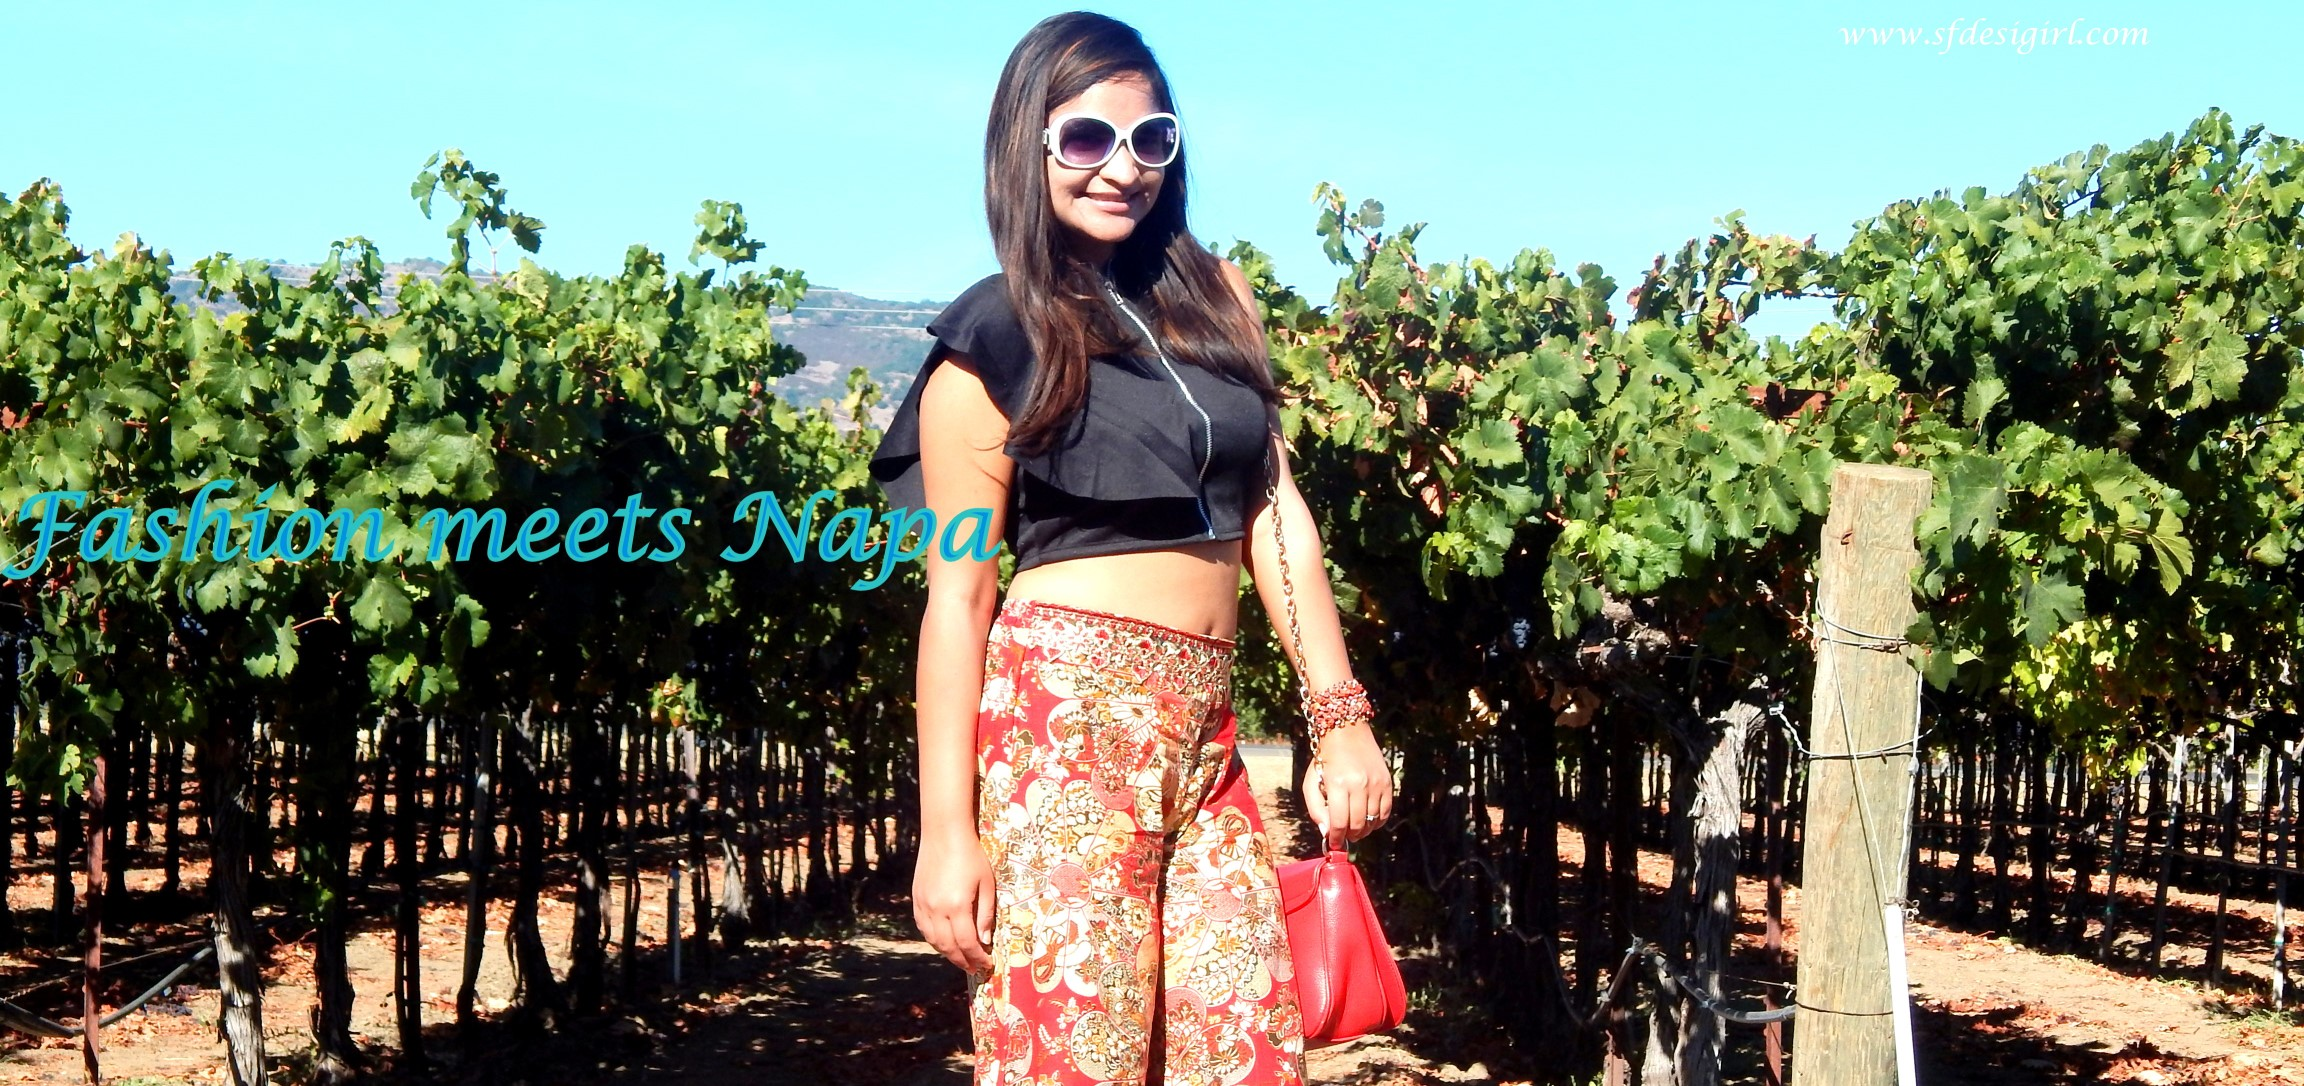 What to wear to a winery – SFDesiGirl